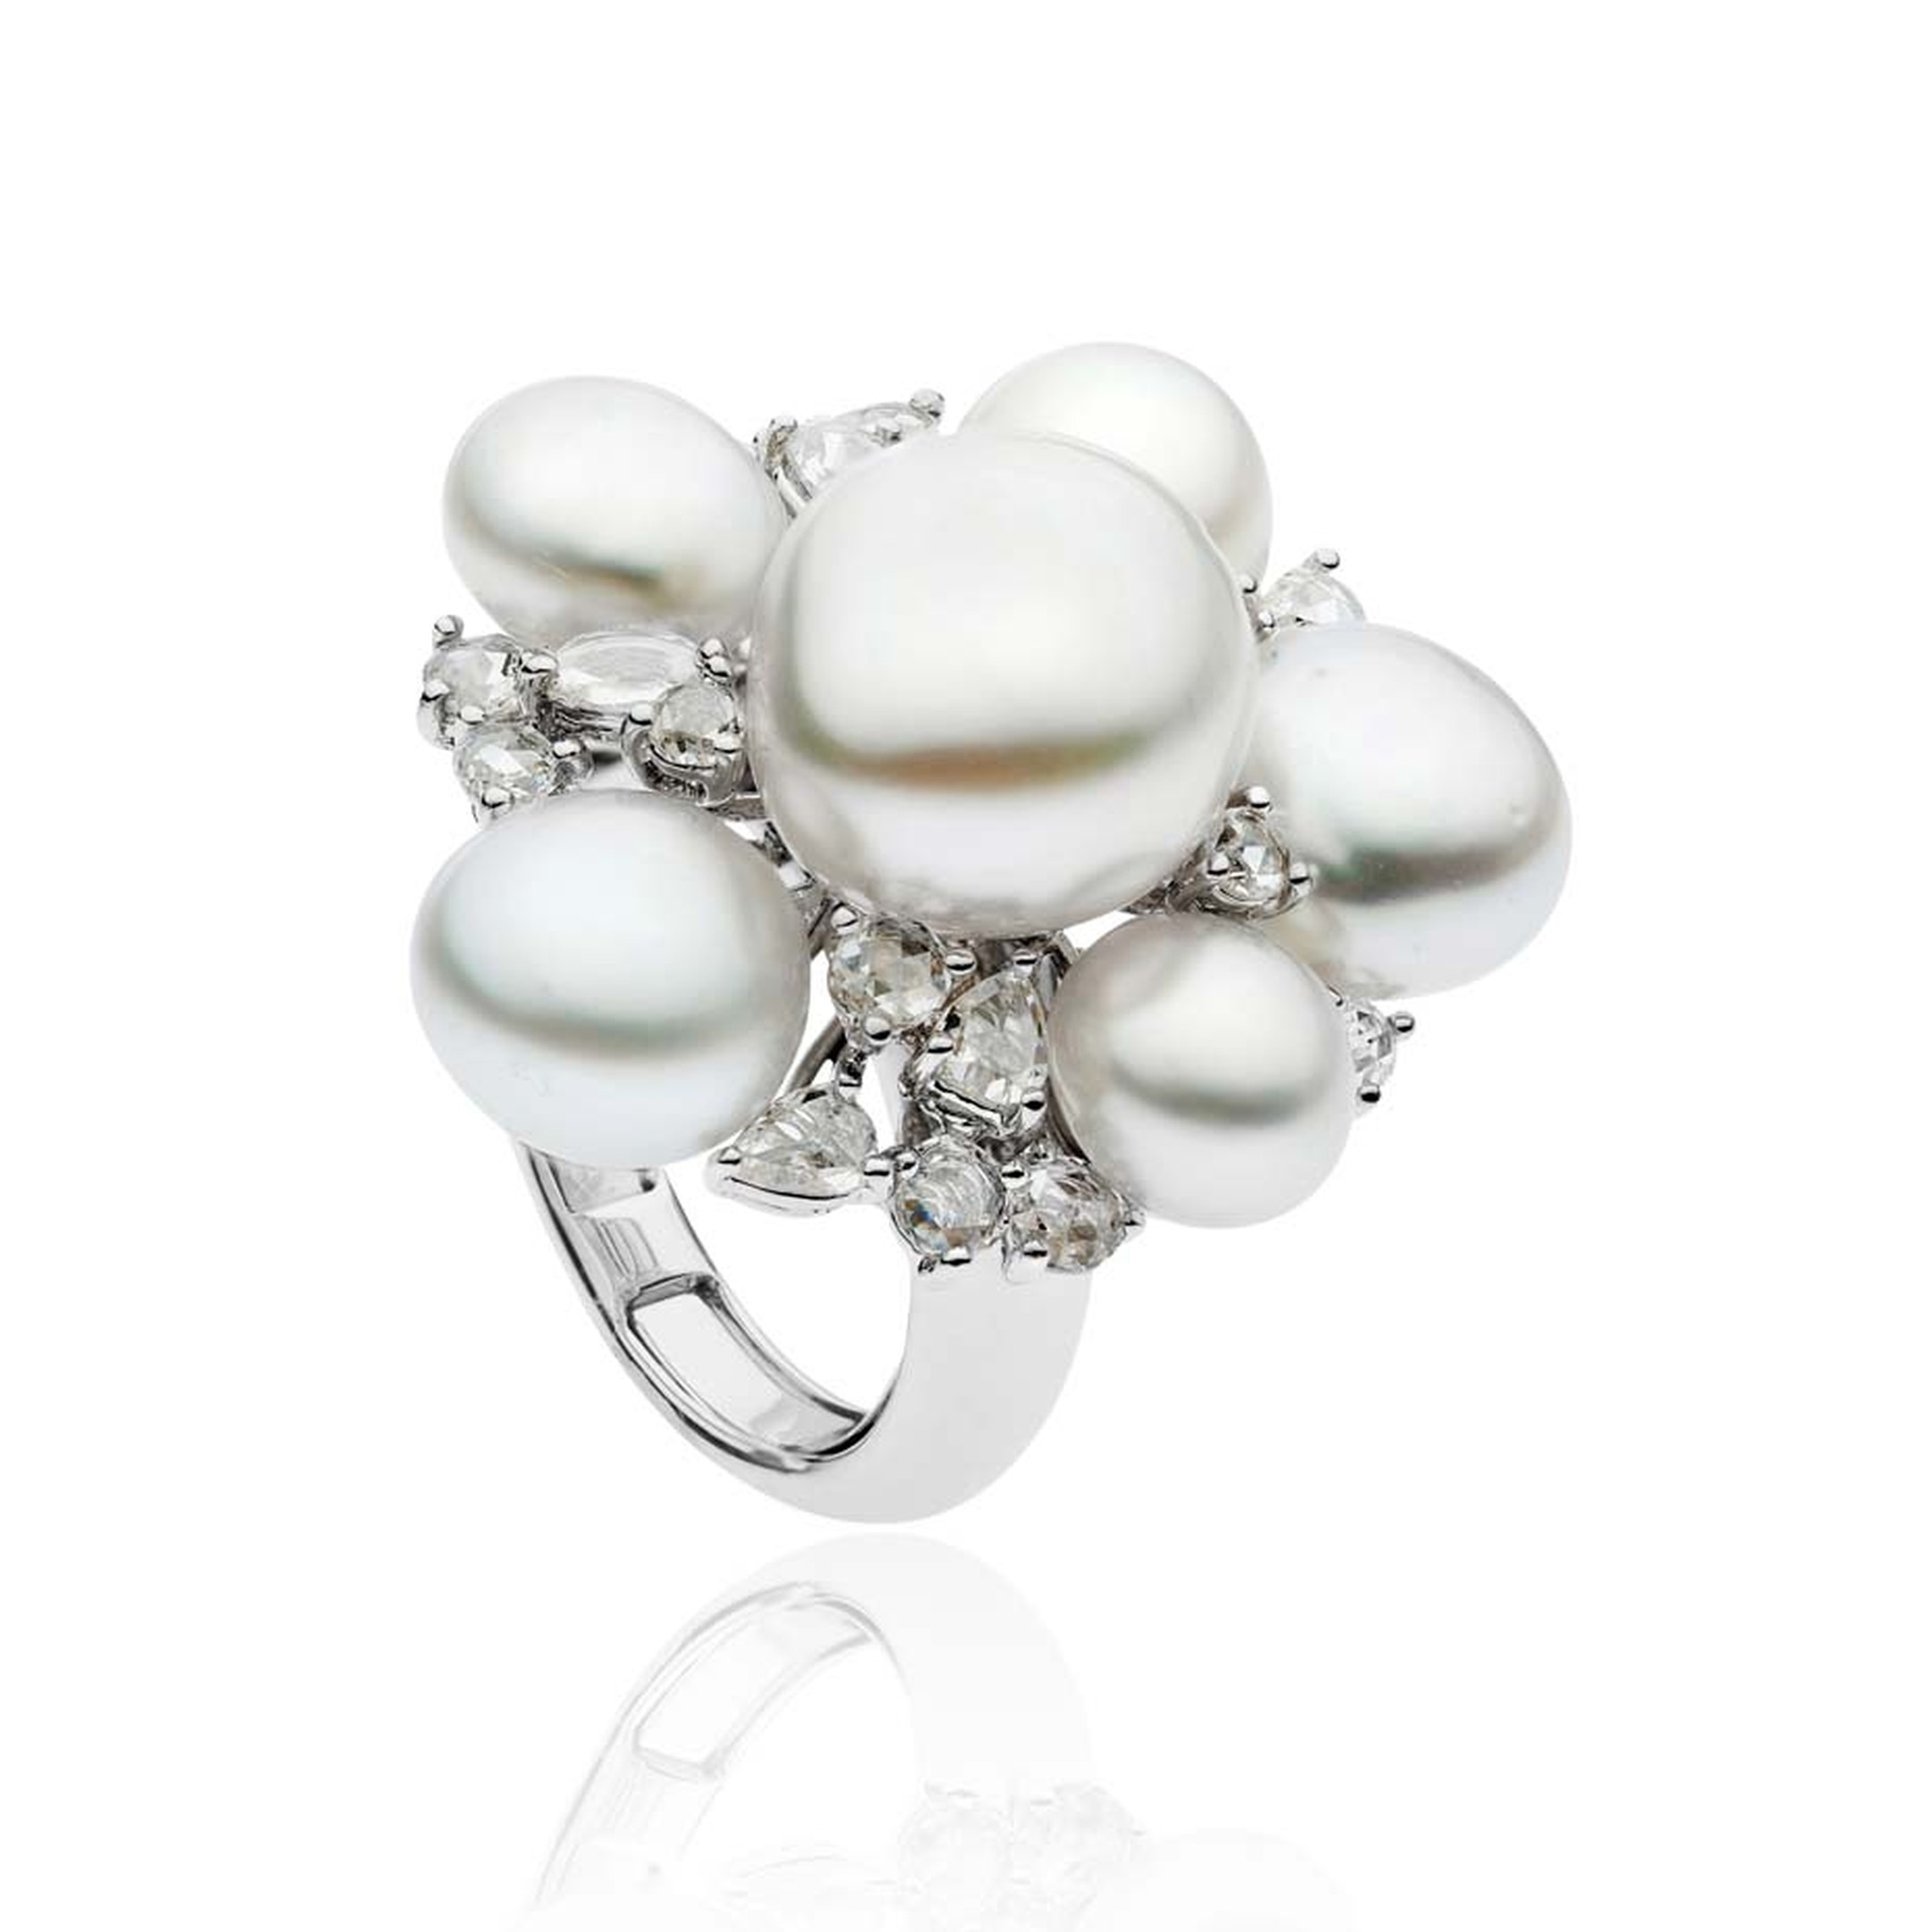 Autore South Sea Keshi pearl ring in white gold with diamonds, from the Rose Cut collection.